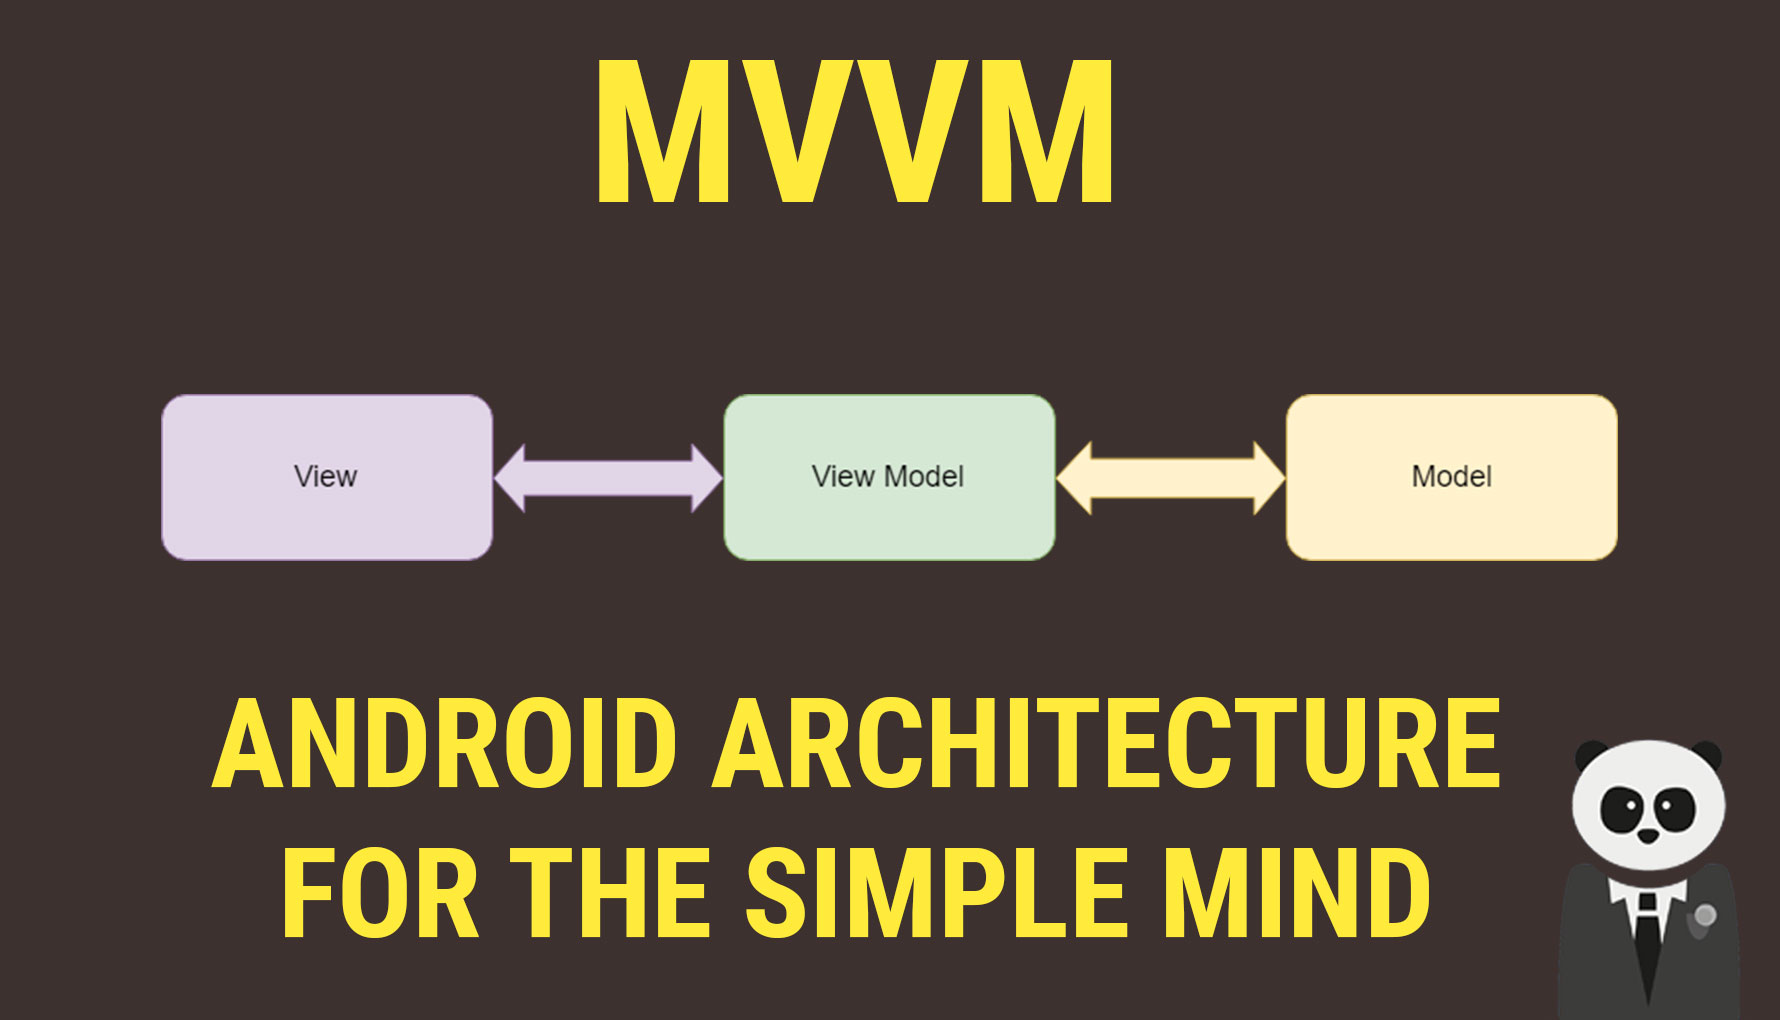 Android Architecture for the Simple Mind: MVVM (Model, View, View-Model)